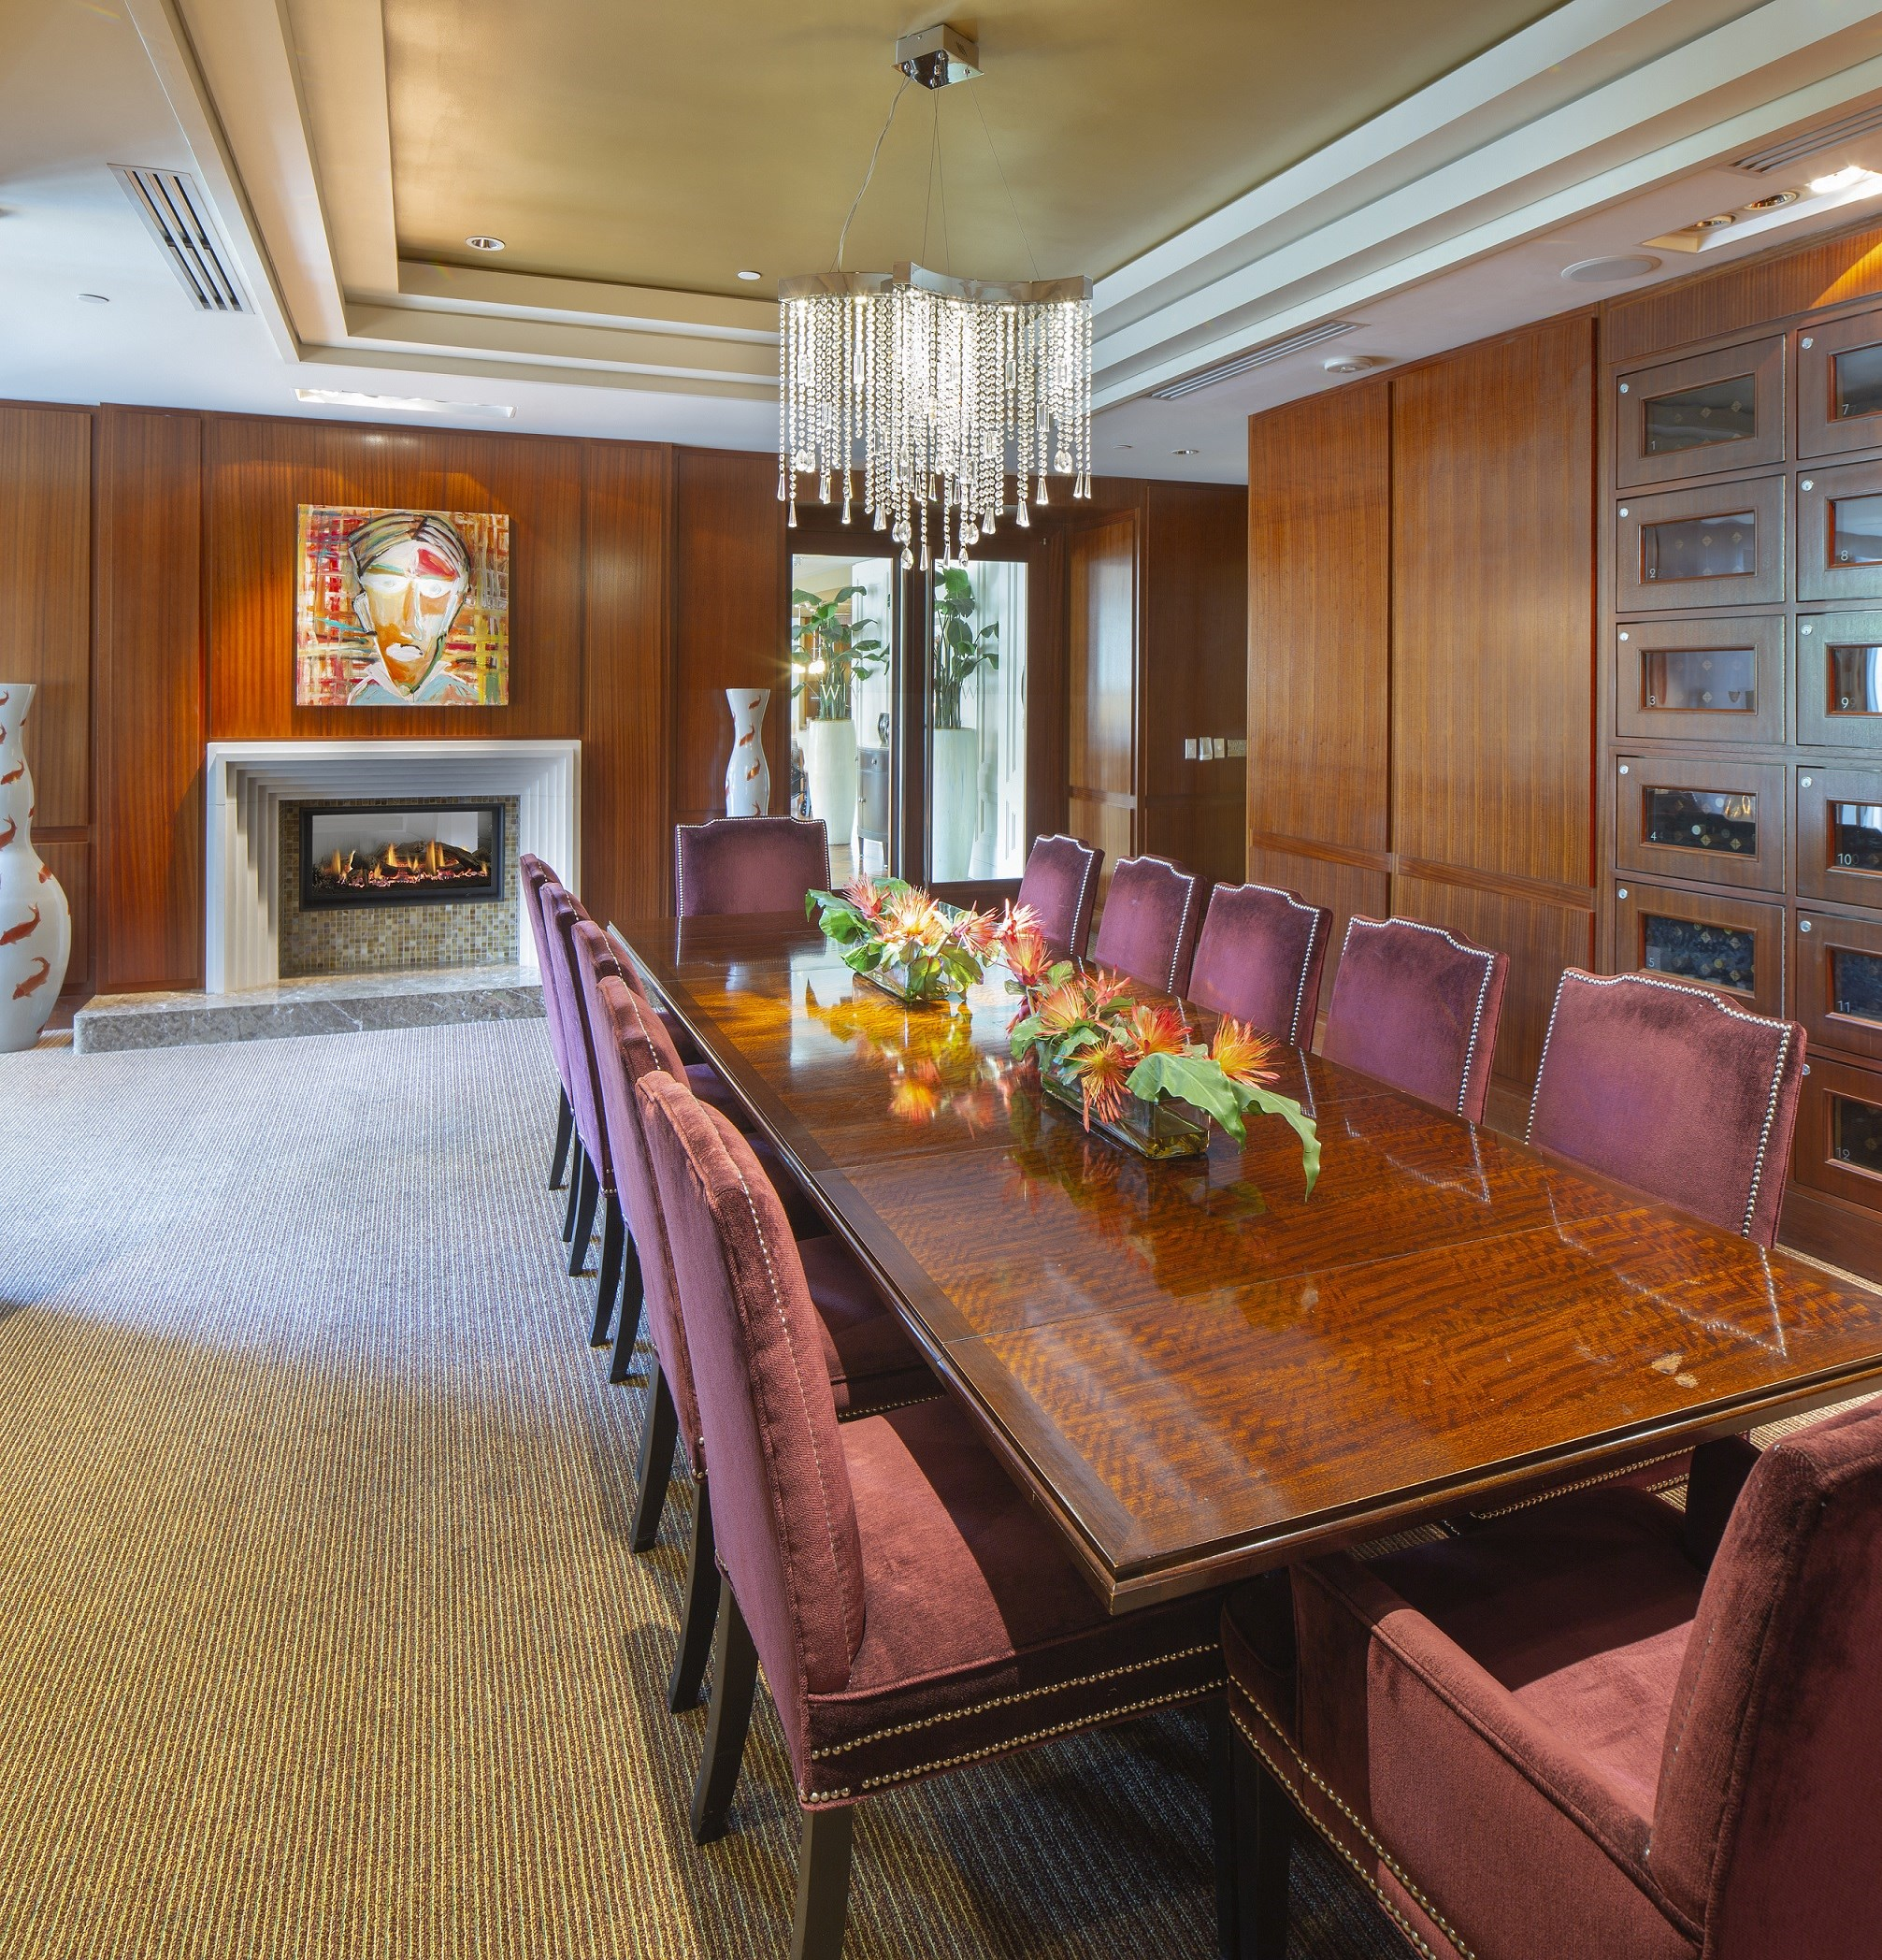 Westwood-Luxury-Apartments-Wilshire-Victoria-Interior-Conference-Center(1)